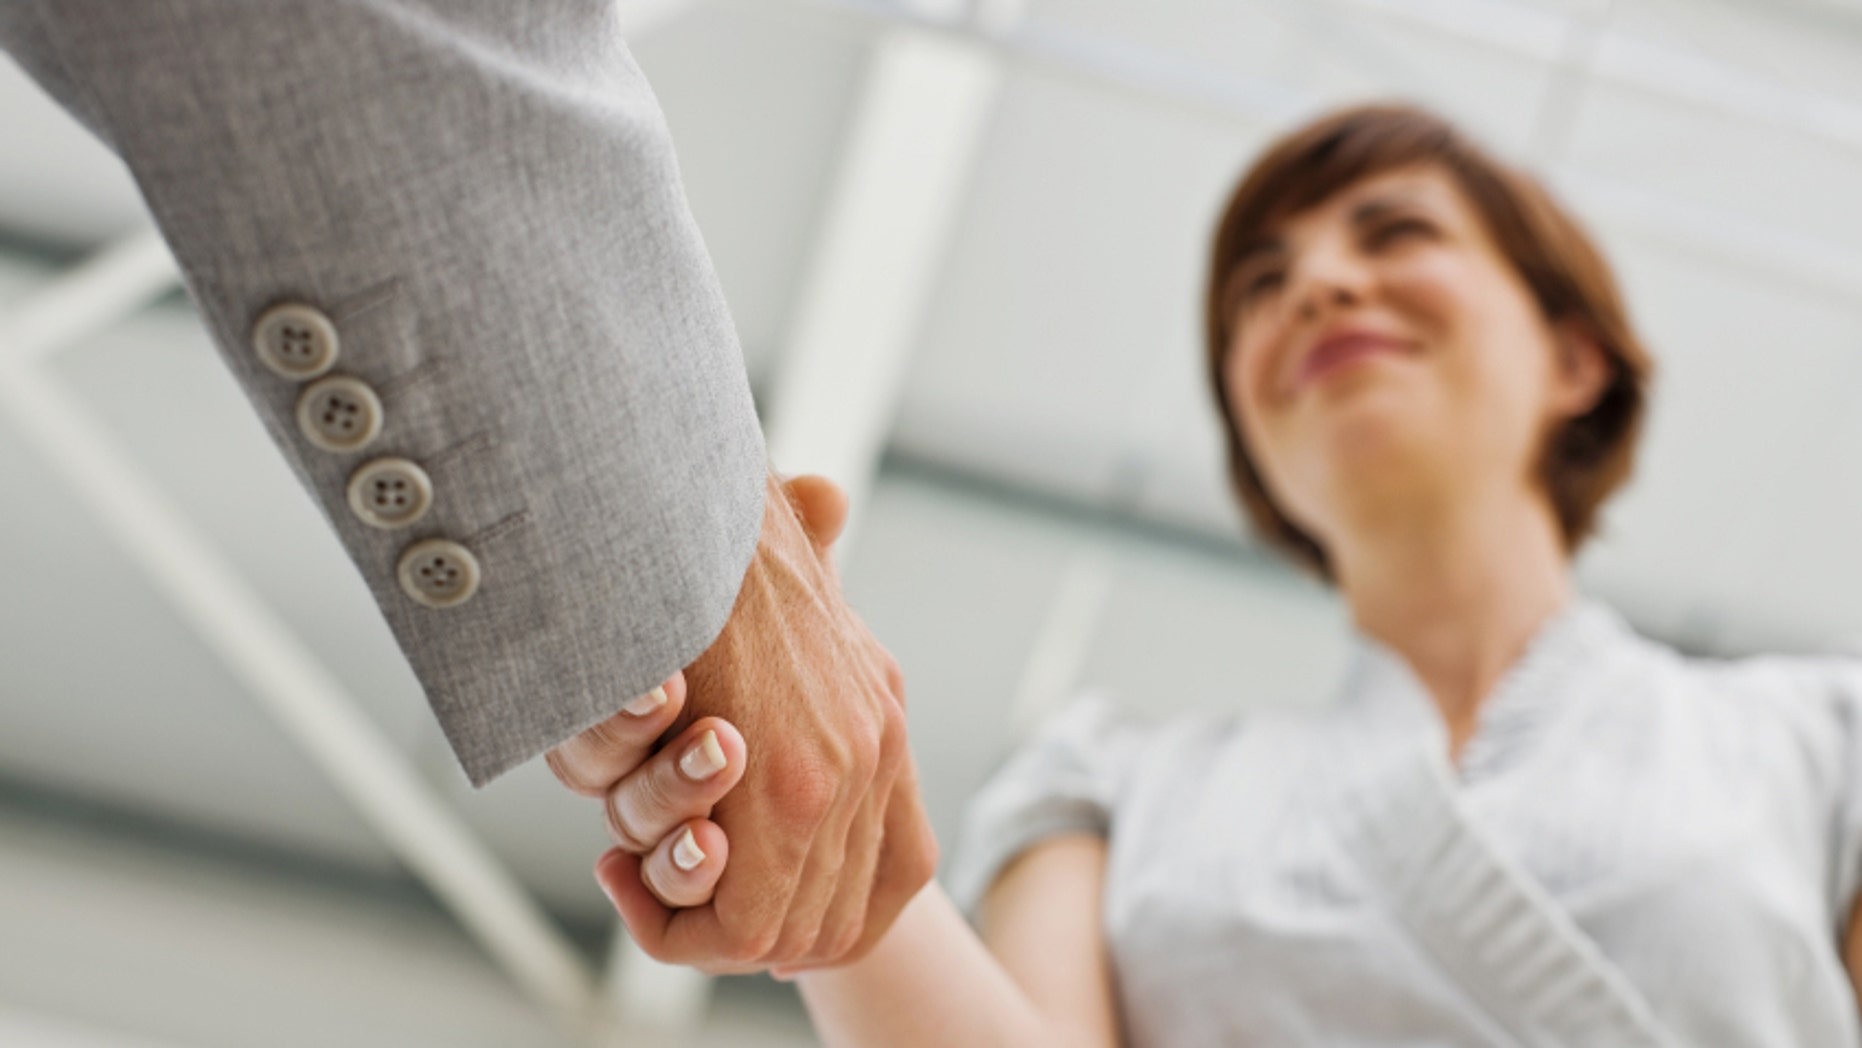 Closeup of human hands shaking hands in office